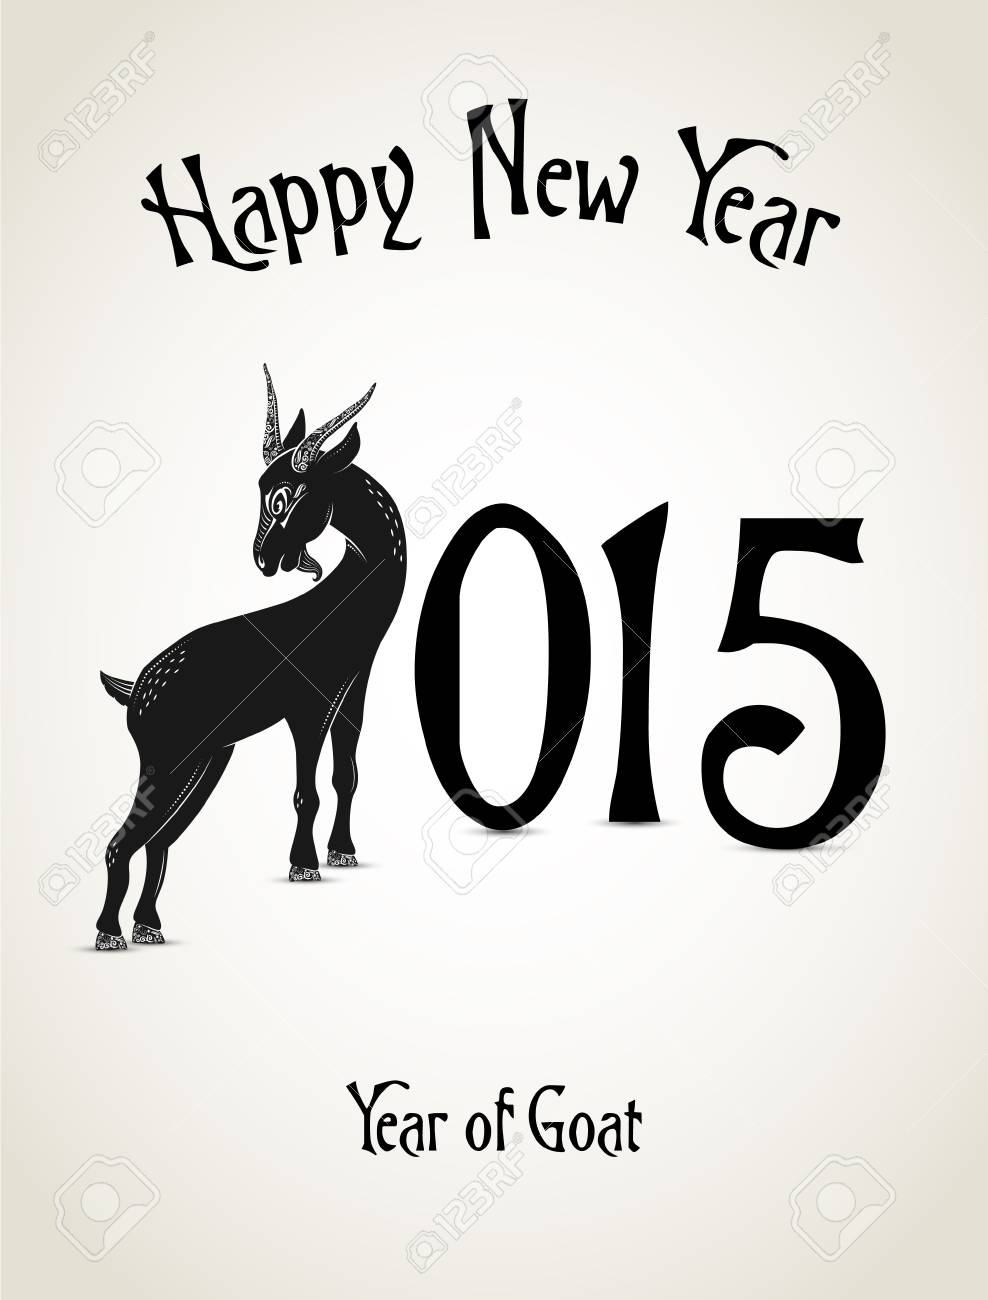 New Year Card With Goat Representing A Year Of Goat Royalty Free